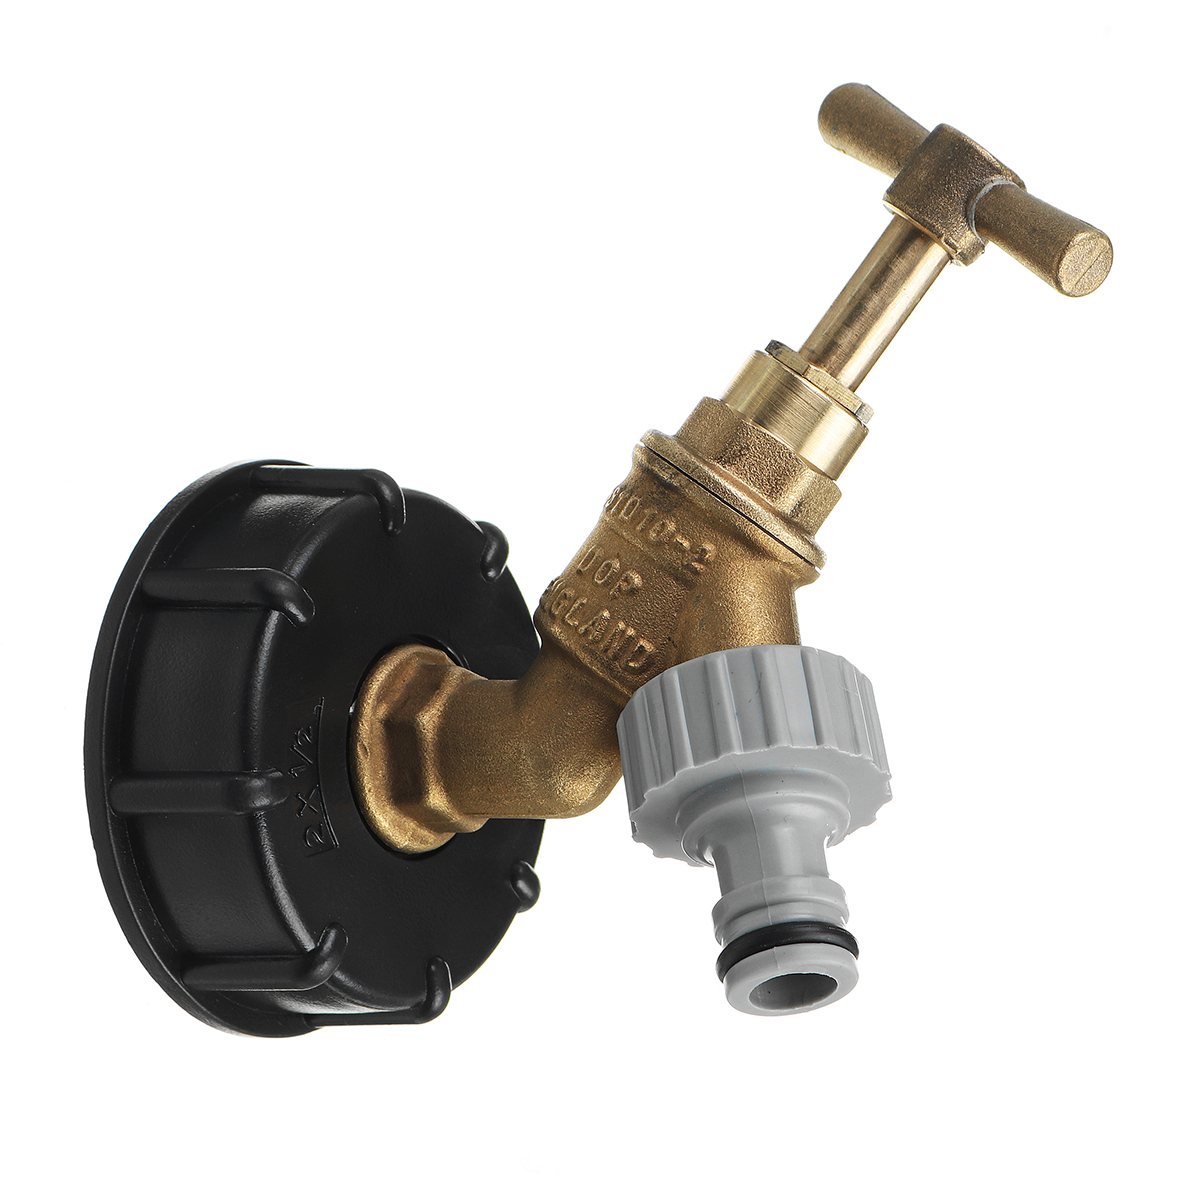 1/2 Inch S60x6 IBC Water Tank Adapter Tap Outlet Replacement Valve Fitting for Garden Water Connector